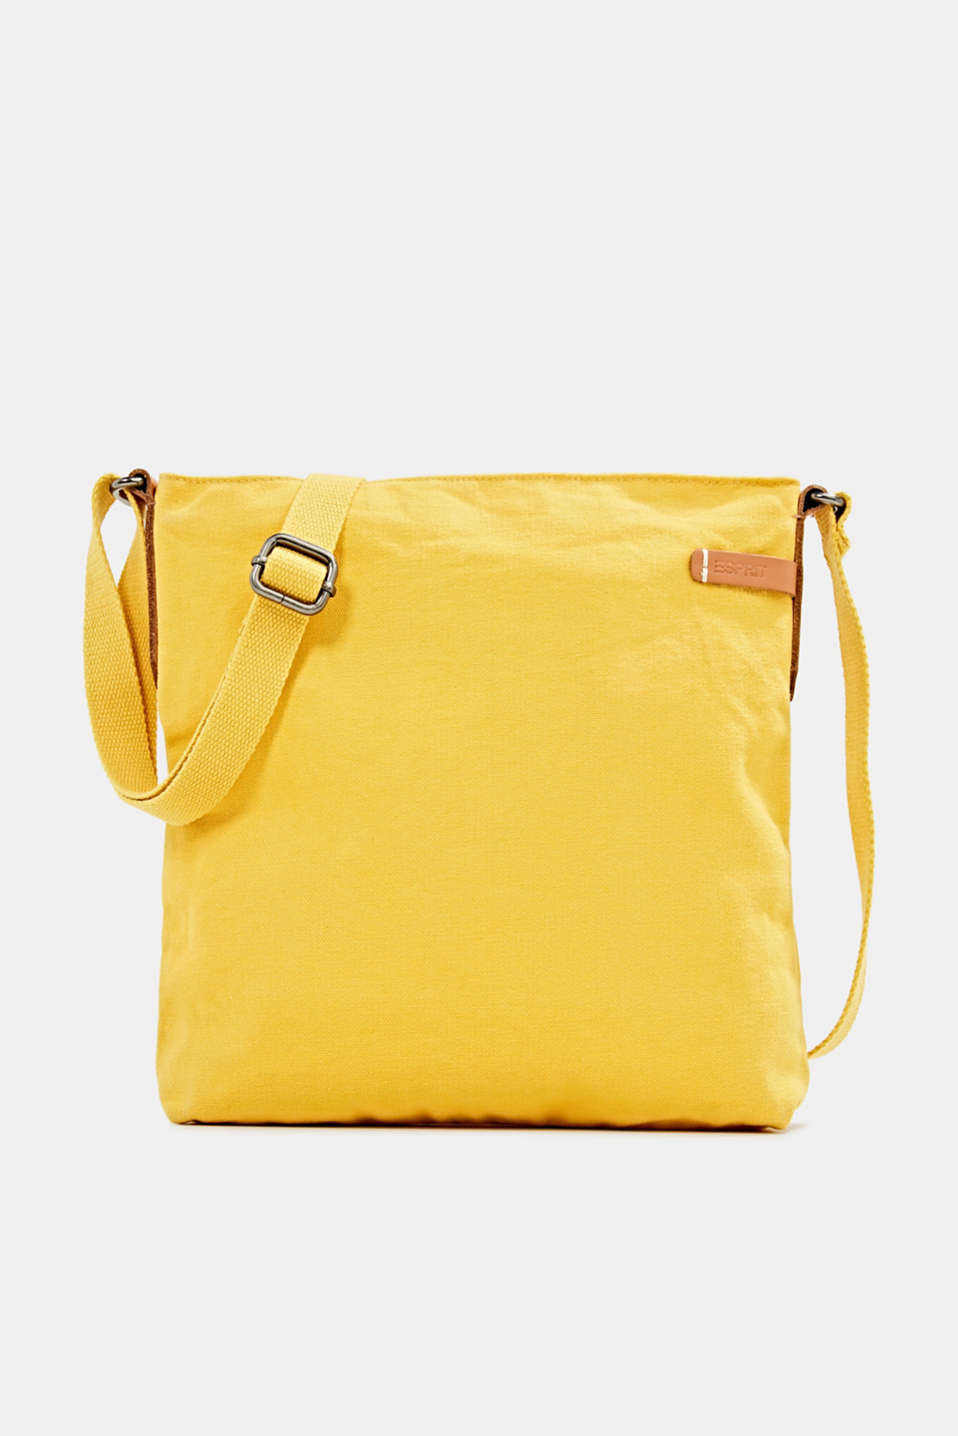 Esprit - Canvas bag with leather details